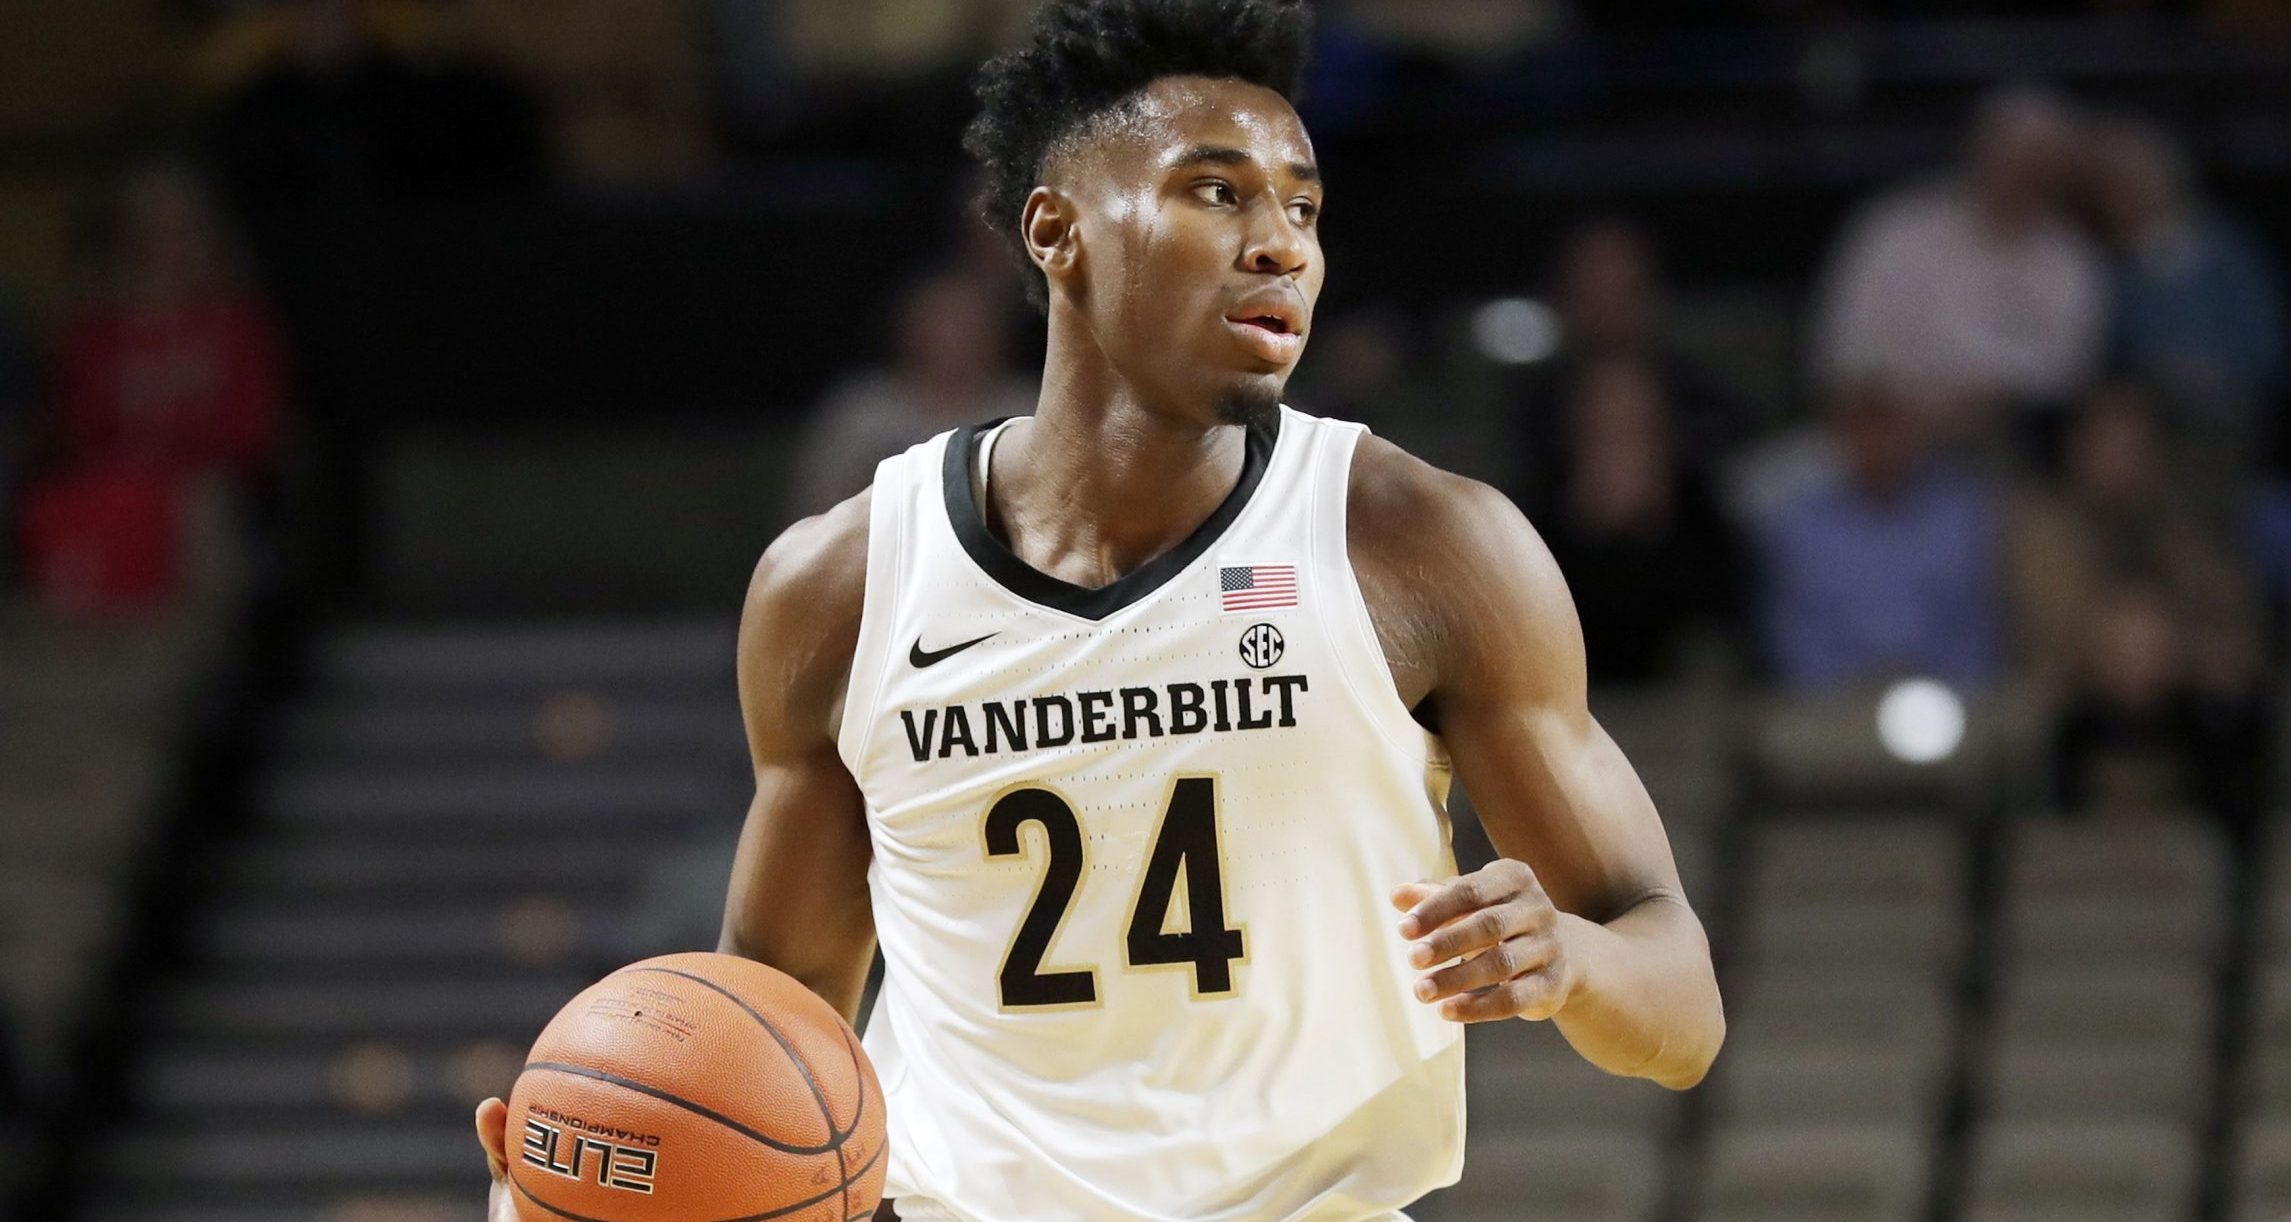 Aaron Nesmith-Vanderbilt Commodores men's basketball-Jerry Stackhouse-Vandy's Nesmith out indefinitely-